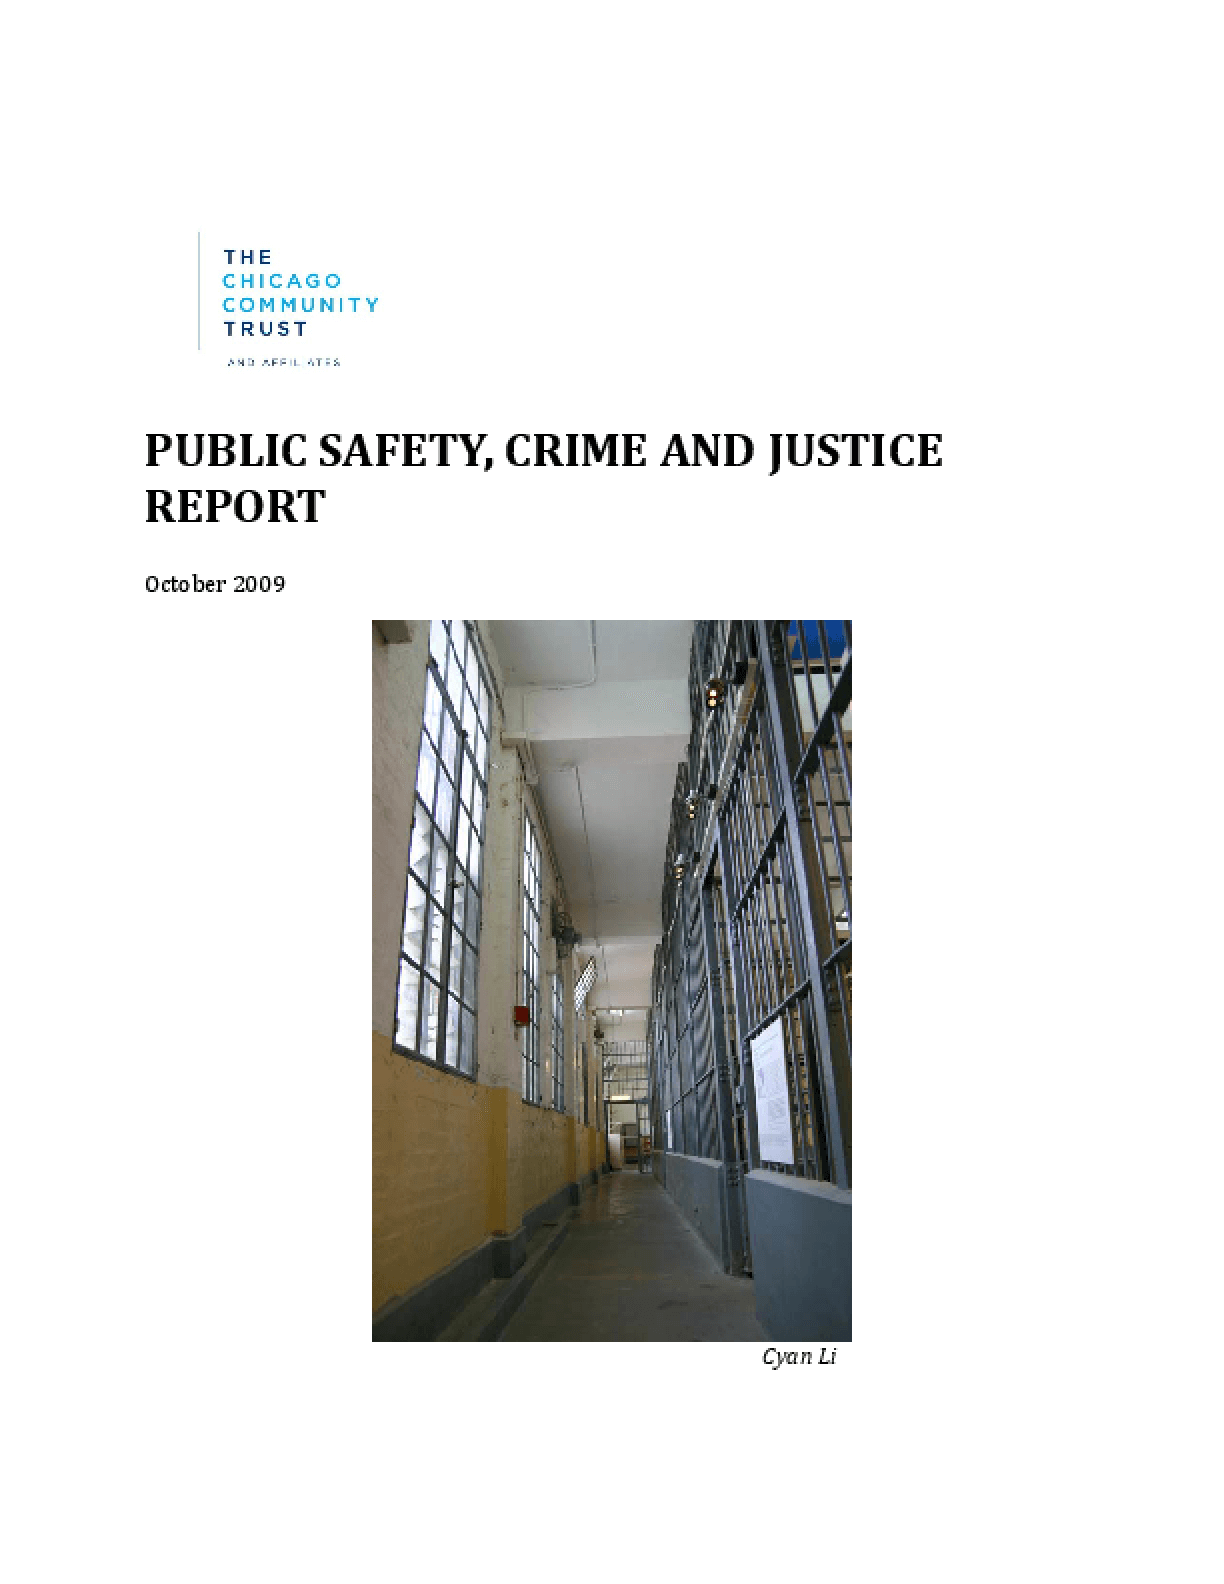 Public Safety, Crime and Justice Report